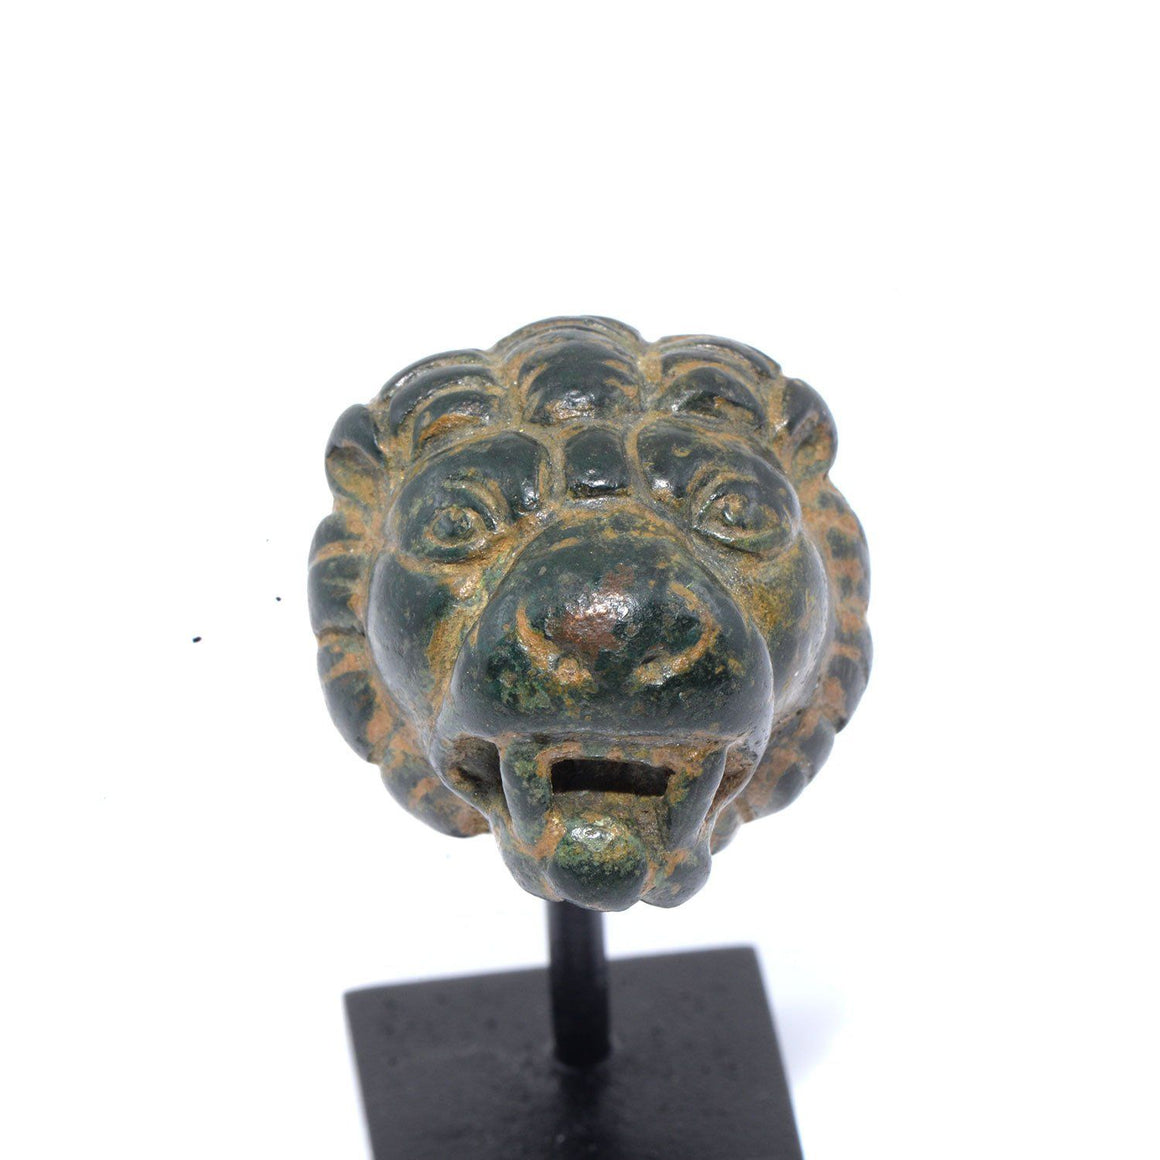 * A Roman Bronze Lion Head Whetstone Handle, Roman Imperial Period, ca. 1st century CE